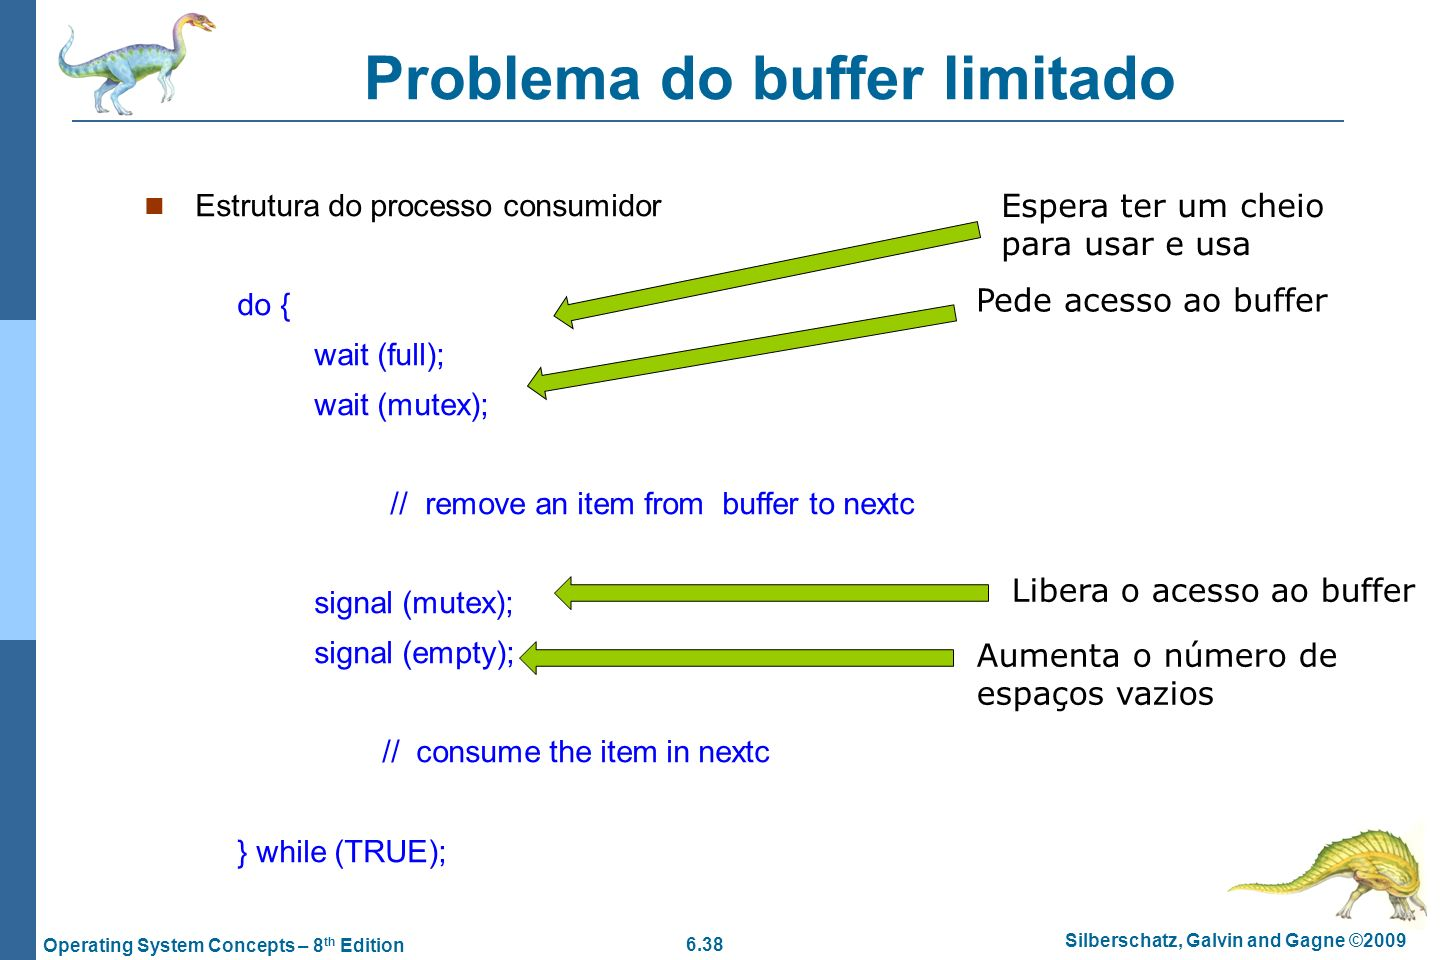 Problema do buffer limitado